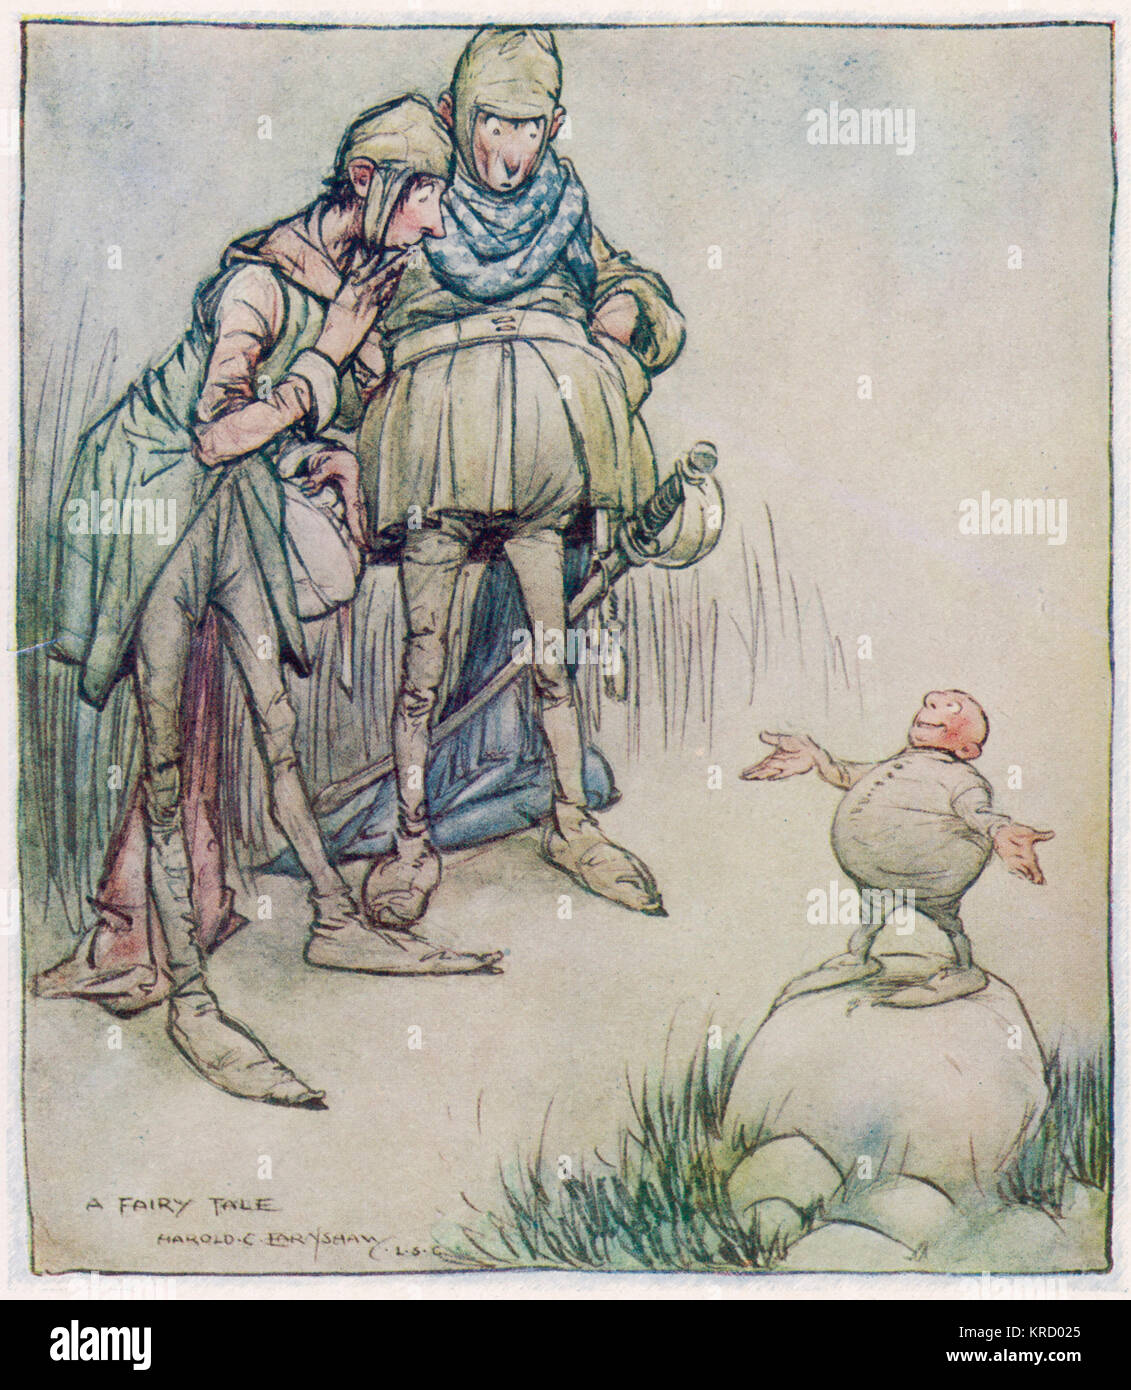 A strange little man appears  as if by magic to the surprise  of two medieval types, who  look rather strange  themselves. - Stock Image